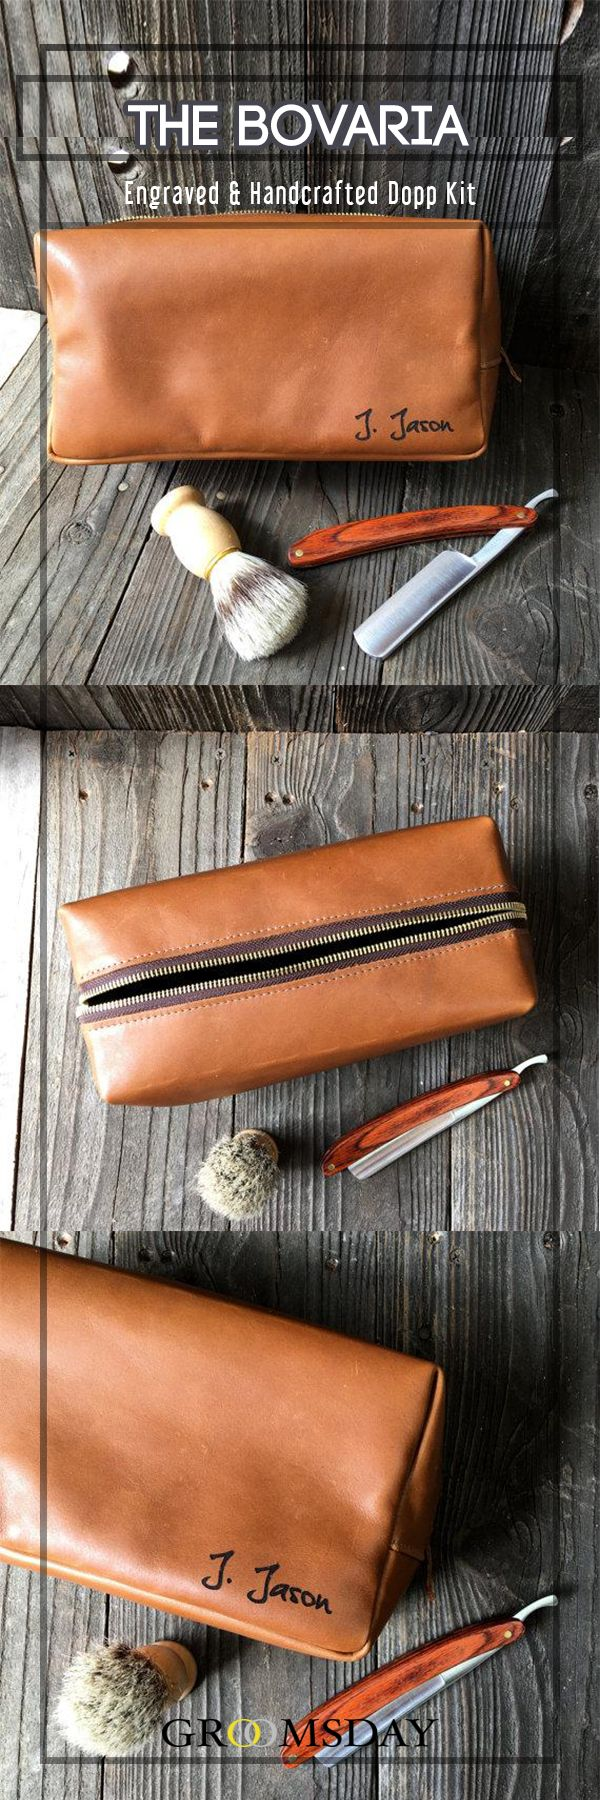 If you're gonna carry toiletries around, you better do it right. Not with a see-through case, or one that looks like a woman's purse, but with a bag that from a quick glance, tells you a man owns it. Our 100% genuine leather, handcrafted tan Bovaria Dopp Kit does exactly that, making this the perfect groomsman gift for your bros.  Share & repin!  Only from Groomsday | Groomsday.com #doppkit #shavingbag #mensaccessories #groom #groomsmen #bestman #giftsformen #groomsmengifts…